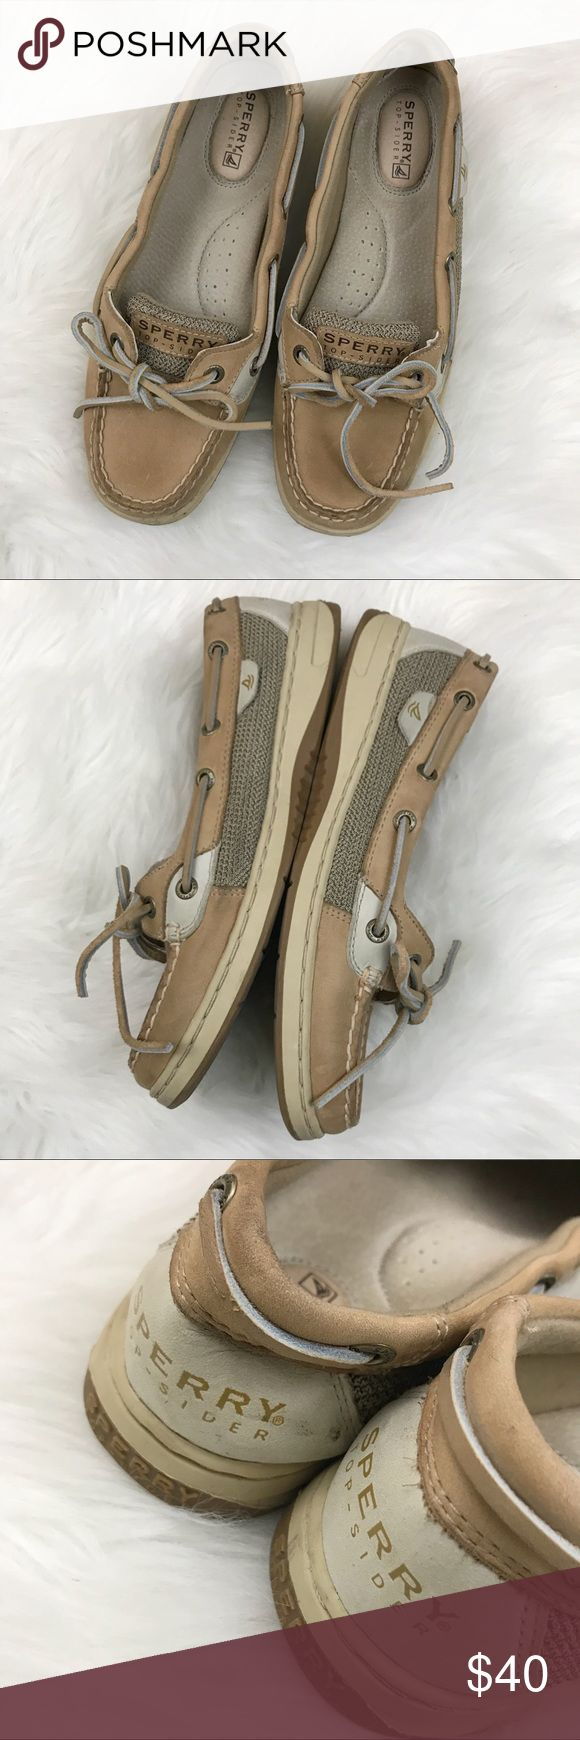 Sperry Top-Sider Angelfish Boat Shoes Sperry Top-Sider Angelfish Boat Shoes. GUC. Leather. Lace up. Size 7.5. Sperry Top-Sider Shoes Flats & Loafers